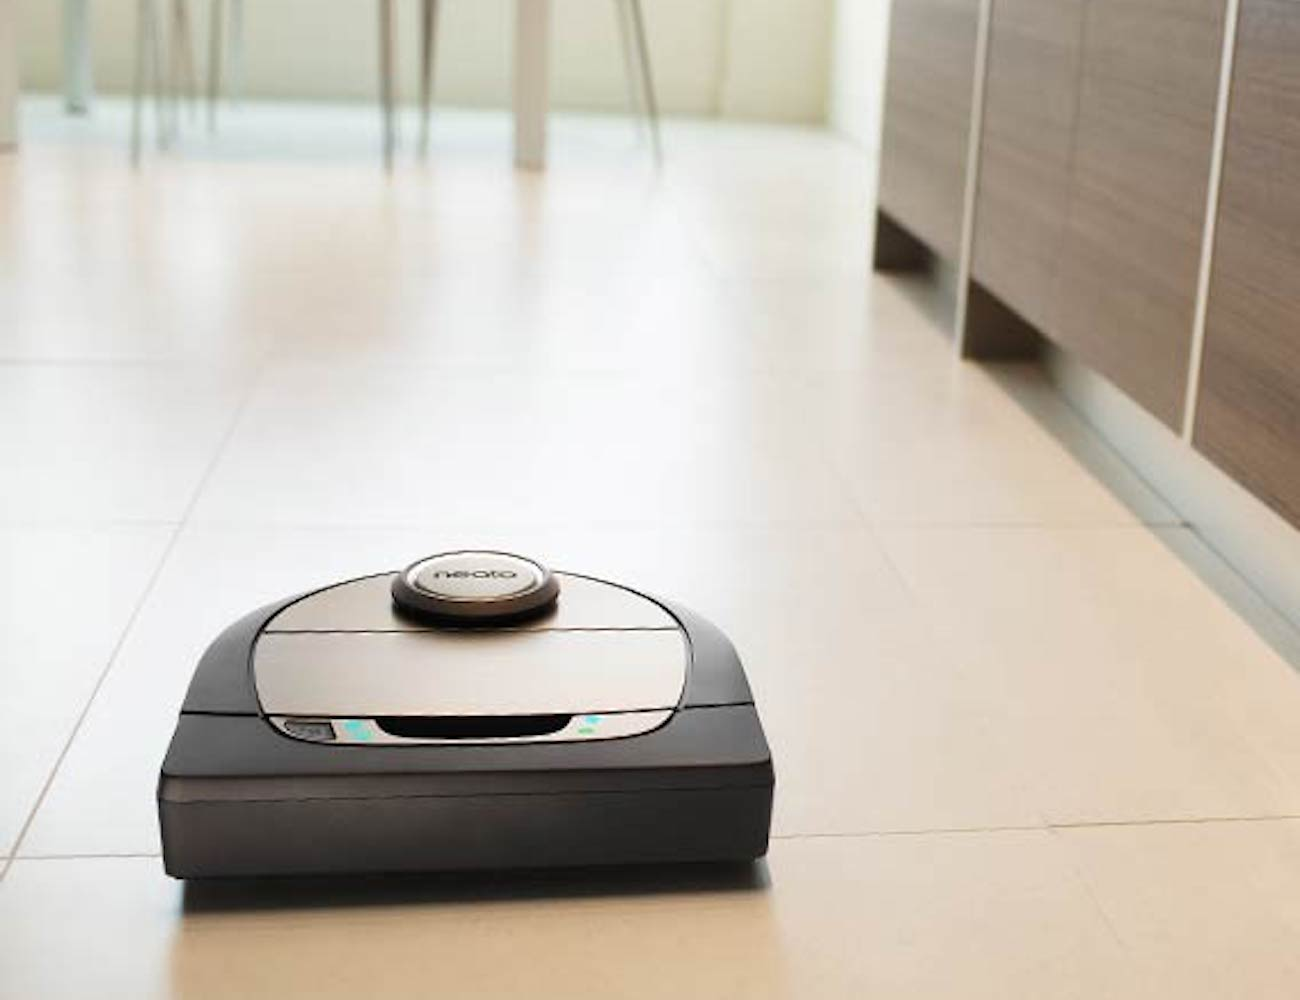 Neato Botvac D7 Connected Wi-Fi Robot Vacuum